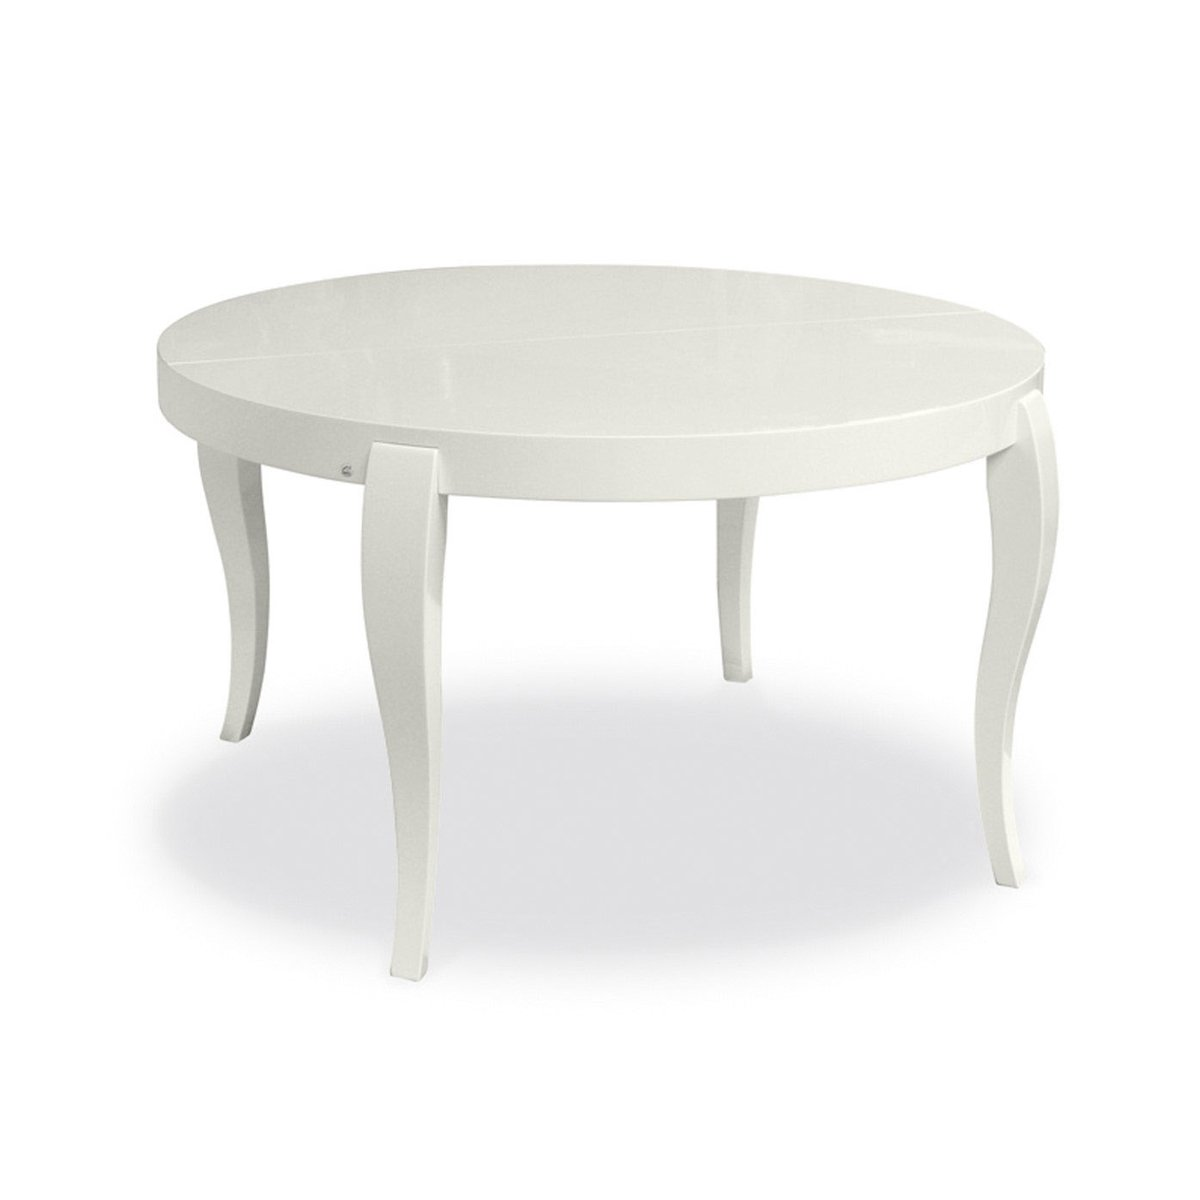 Table de repas extensible ronde regency meubles et for Table ronde extensible